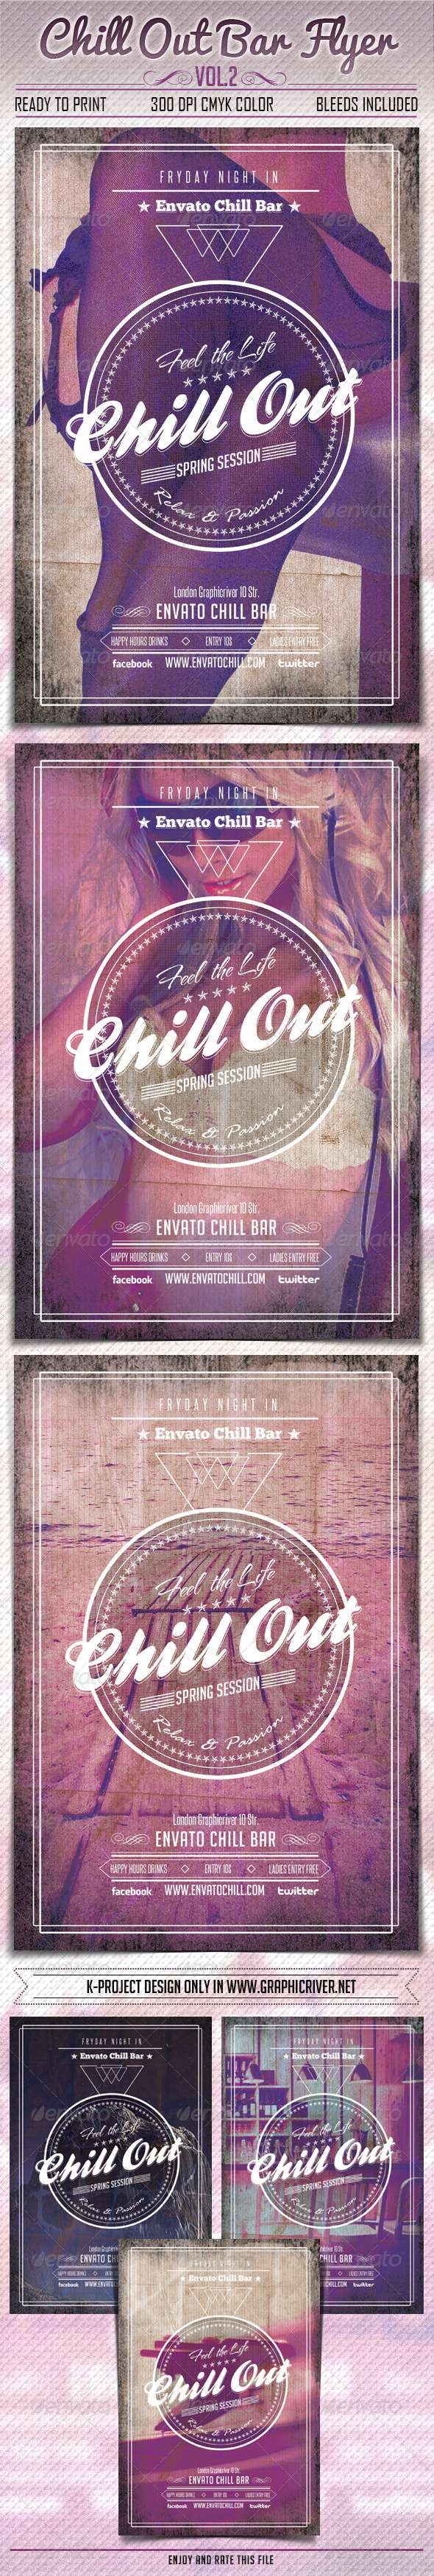 GraphicRiver Chill Out Bar Flyer Vol2 6541473